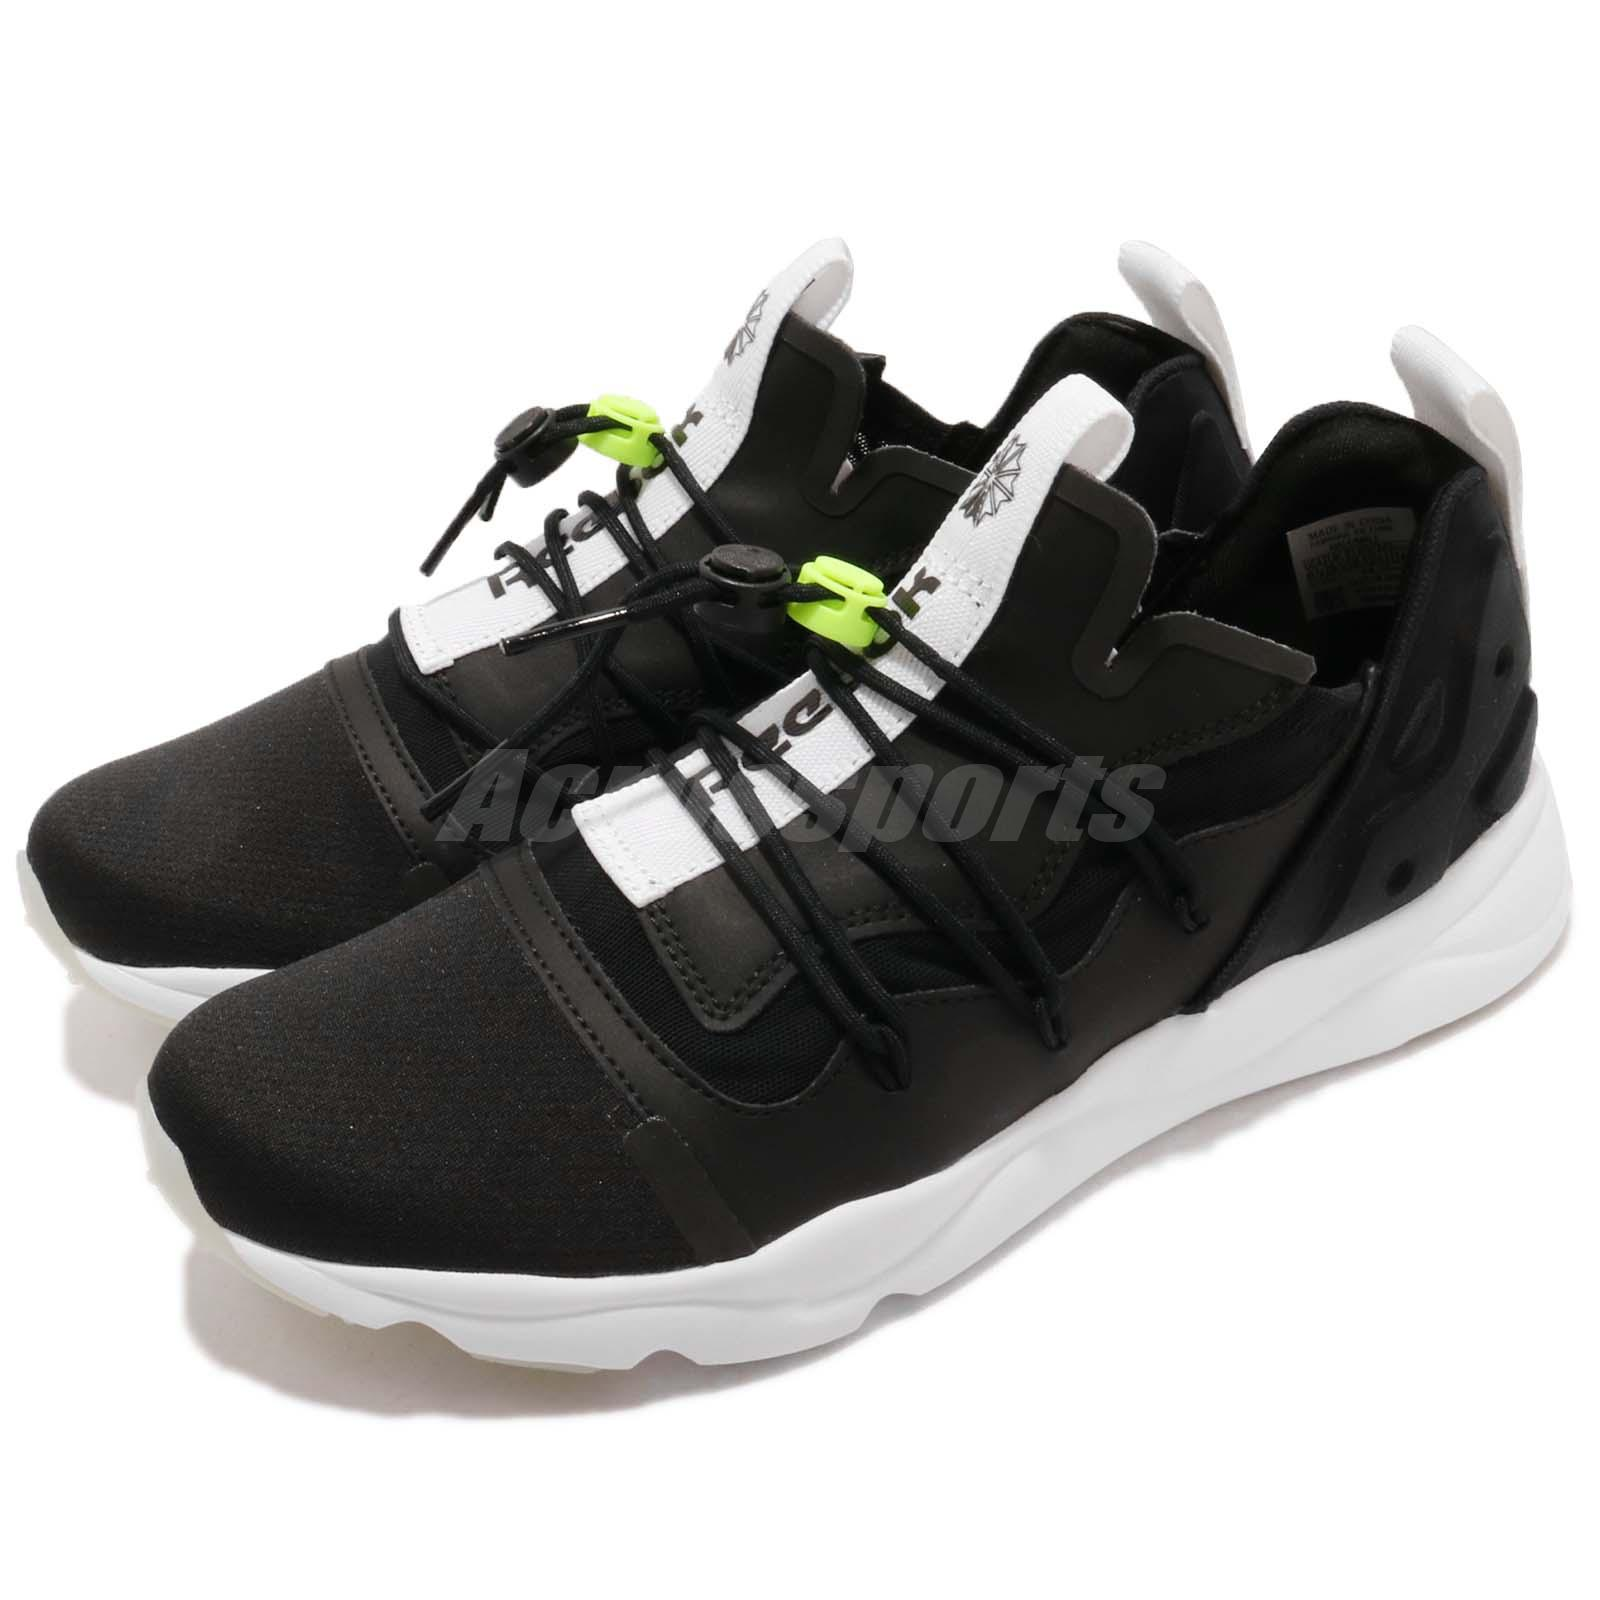 81ccdcd52a6 Details about Reebok Furylite X Black White Men Running Shoes Sneakers  Trainers CN4452